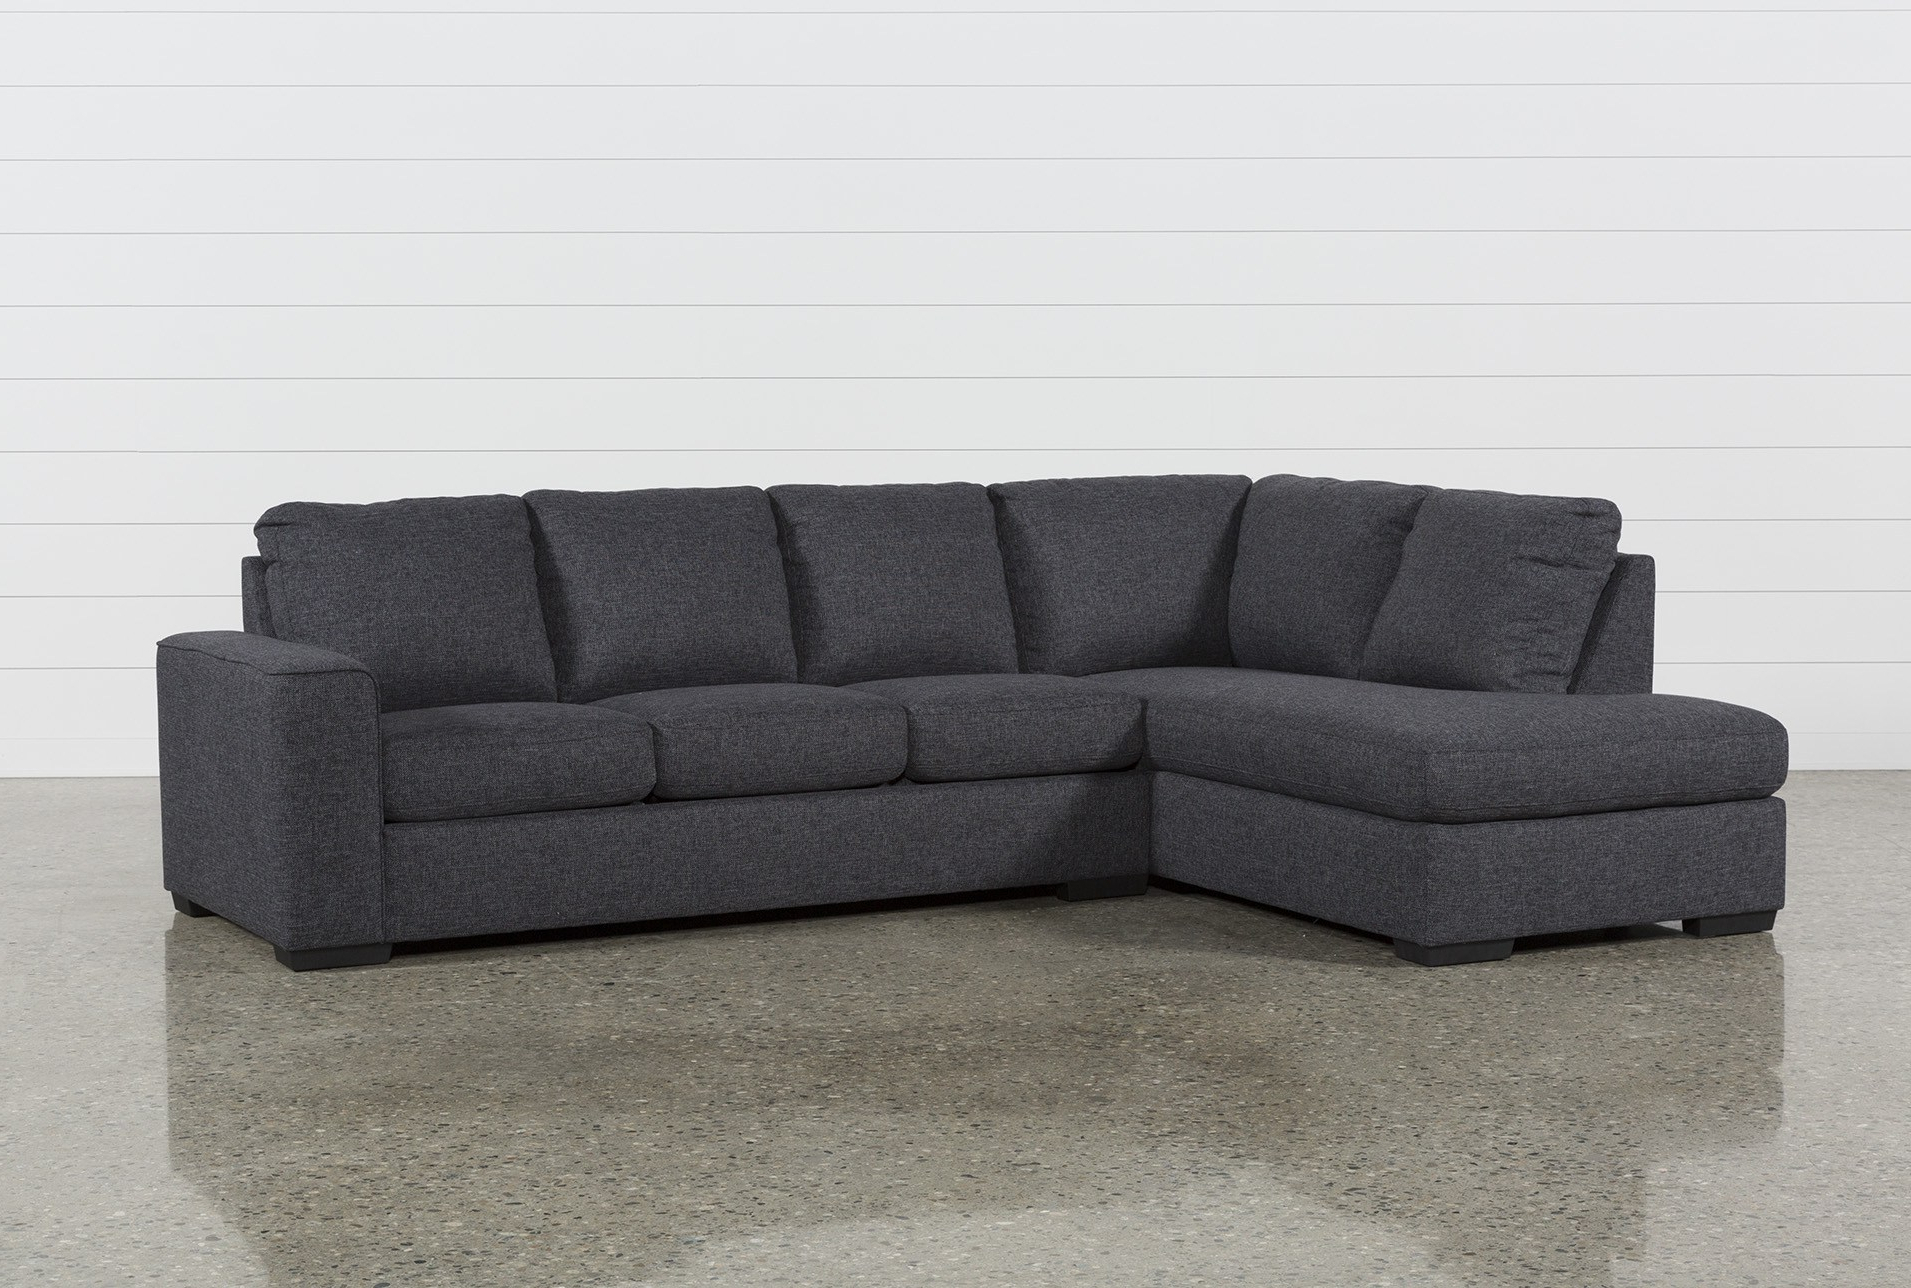 Grey Living Room Sets Decor Inside Favorite Delano Smoke 3 Piece Sectionals (View 19 of 20)